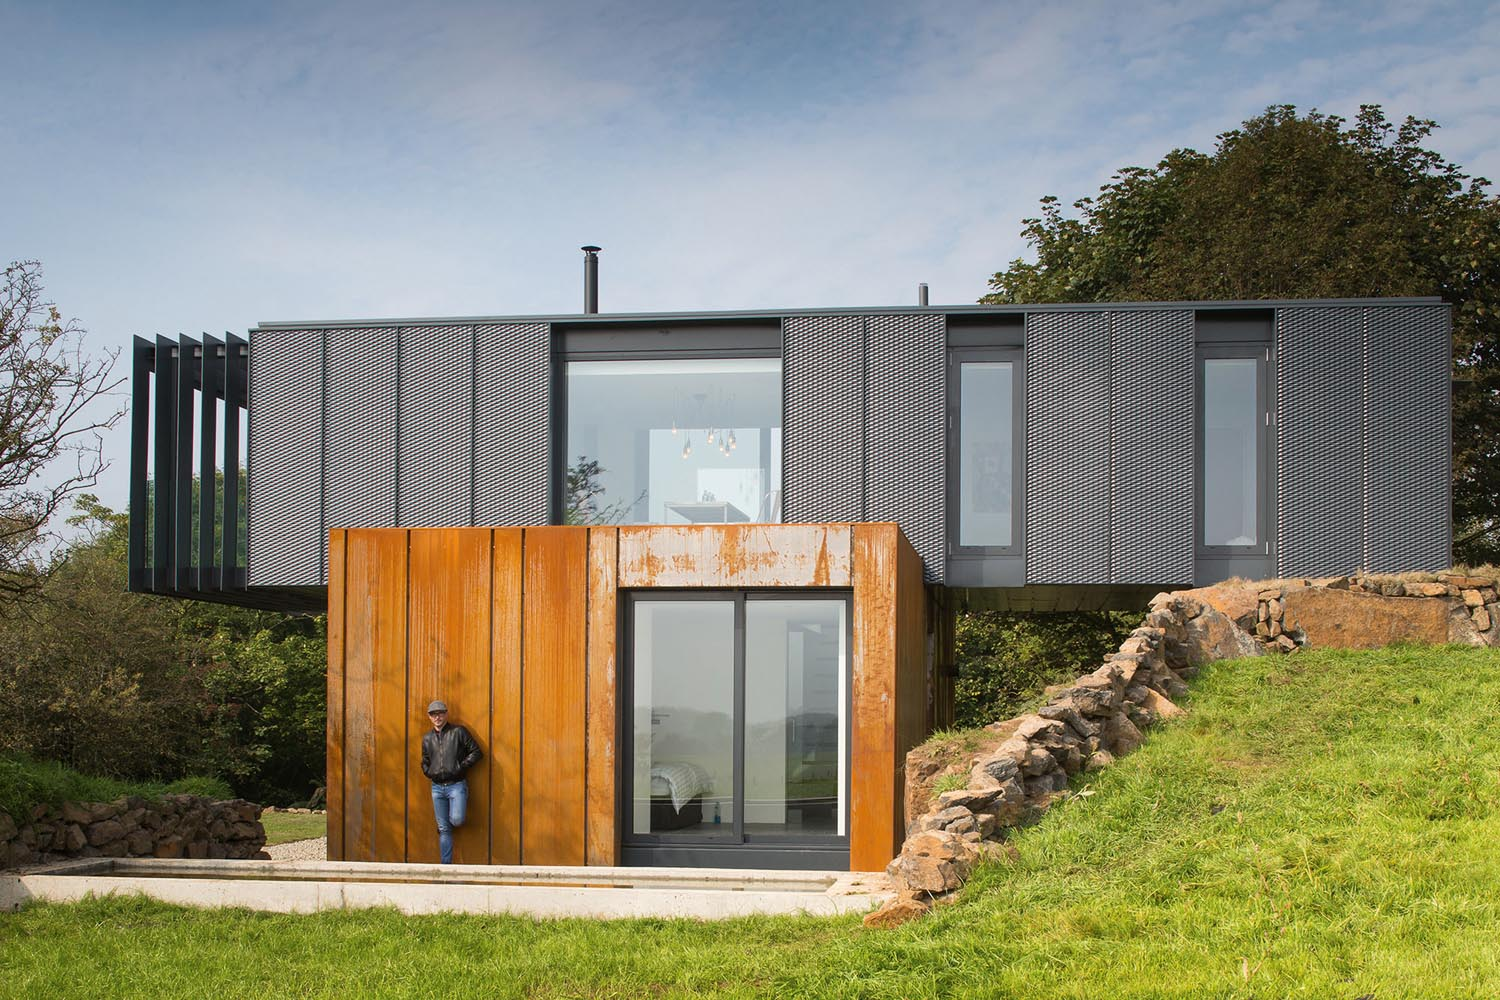 Patrick built his innovative home on a plot on the family farm